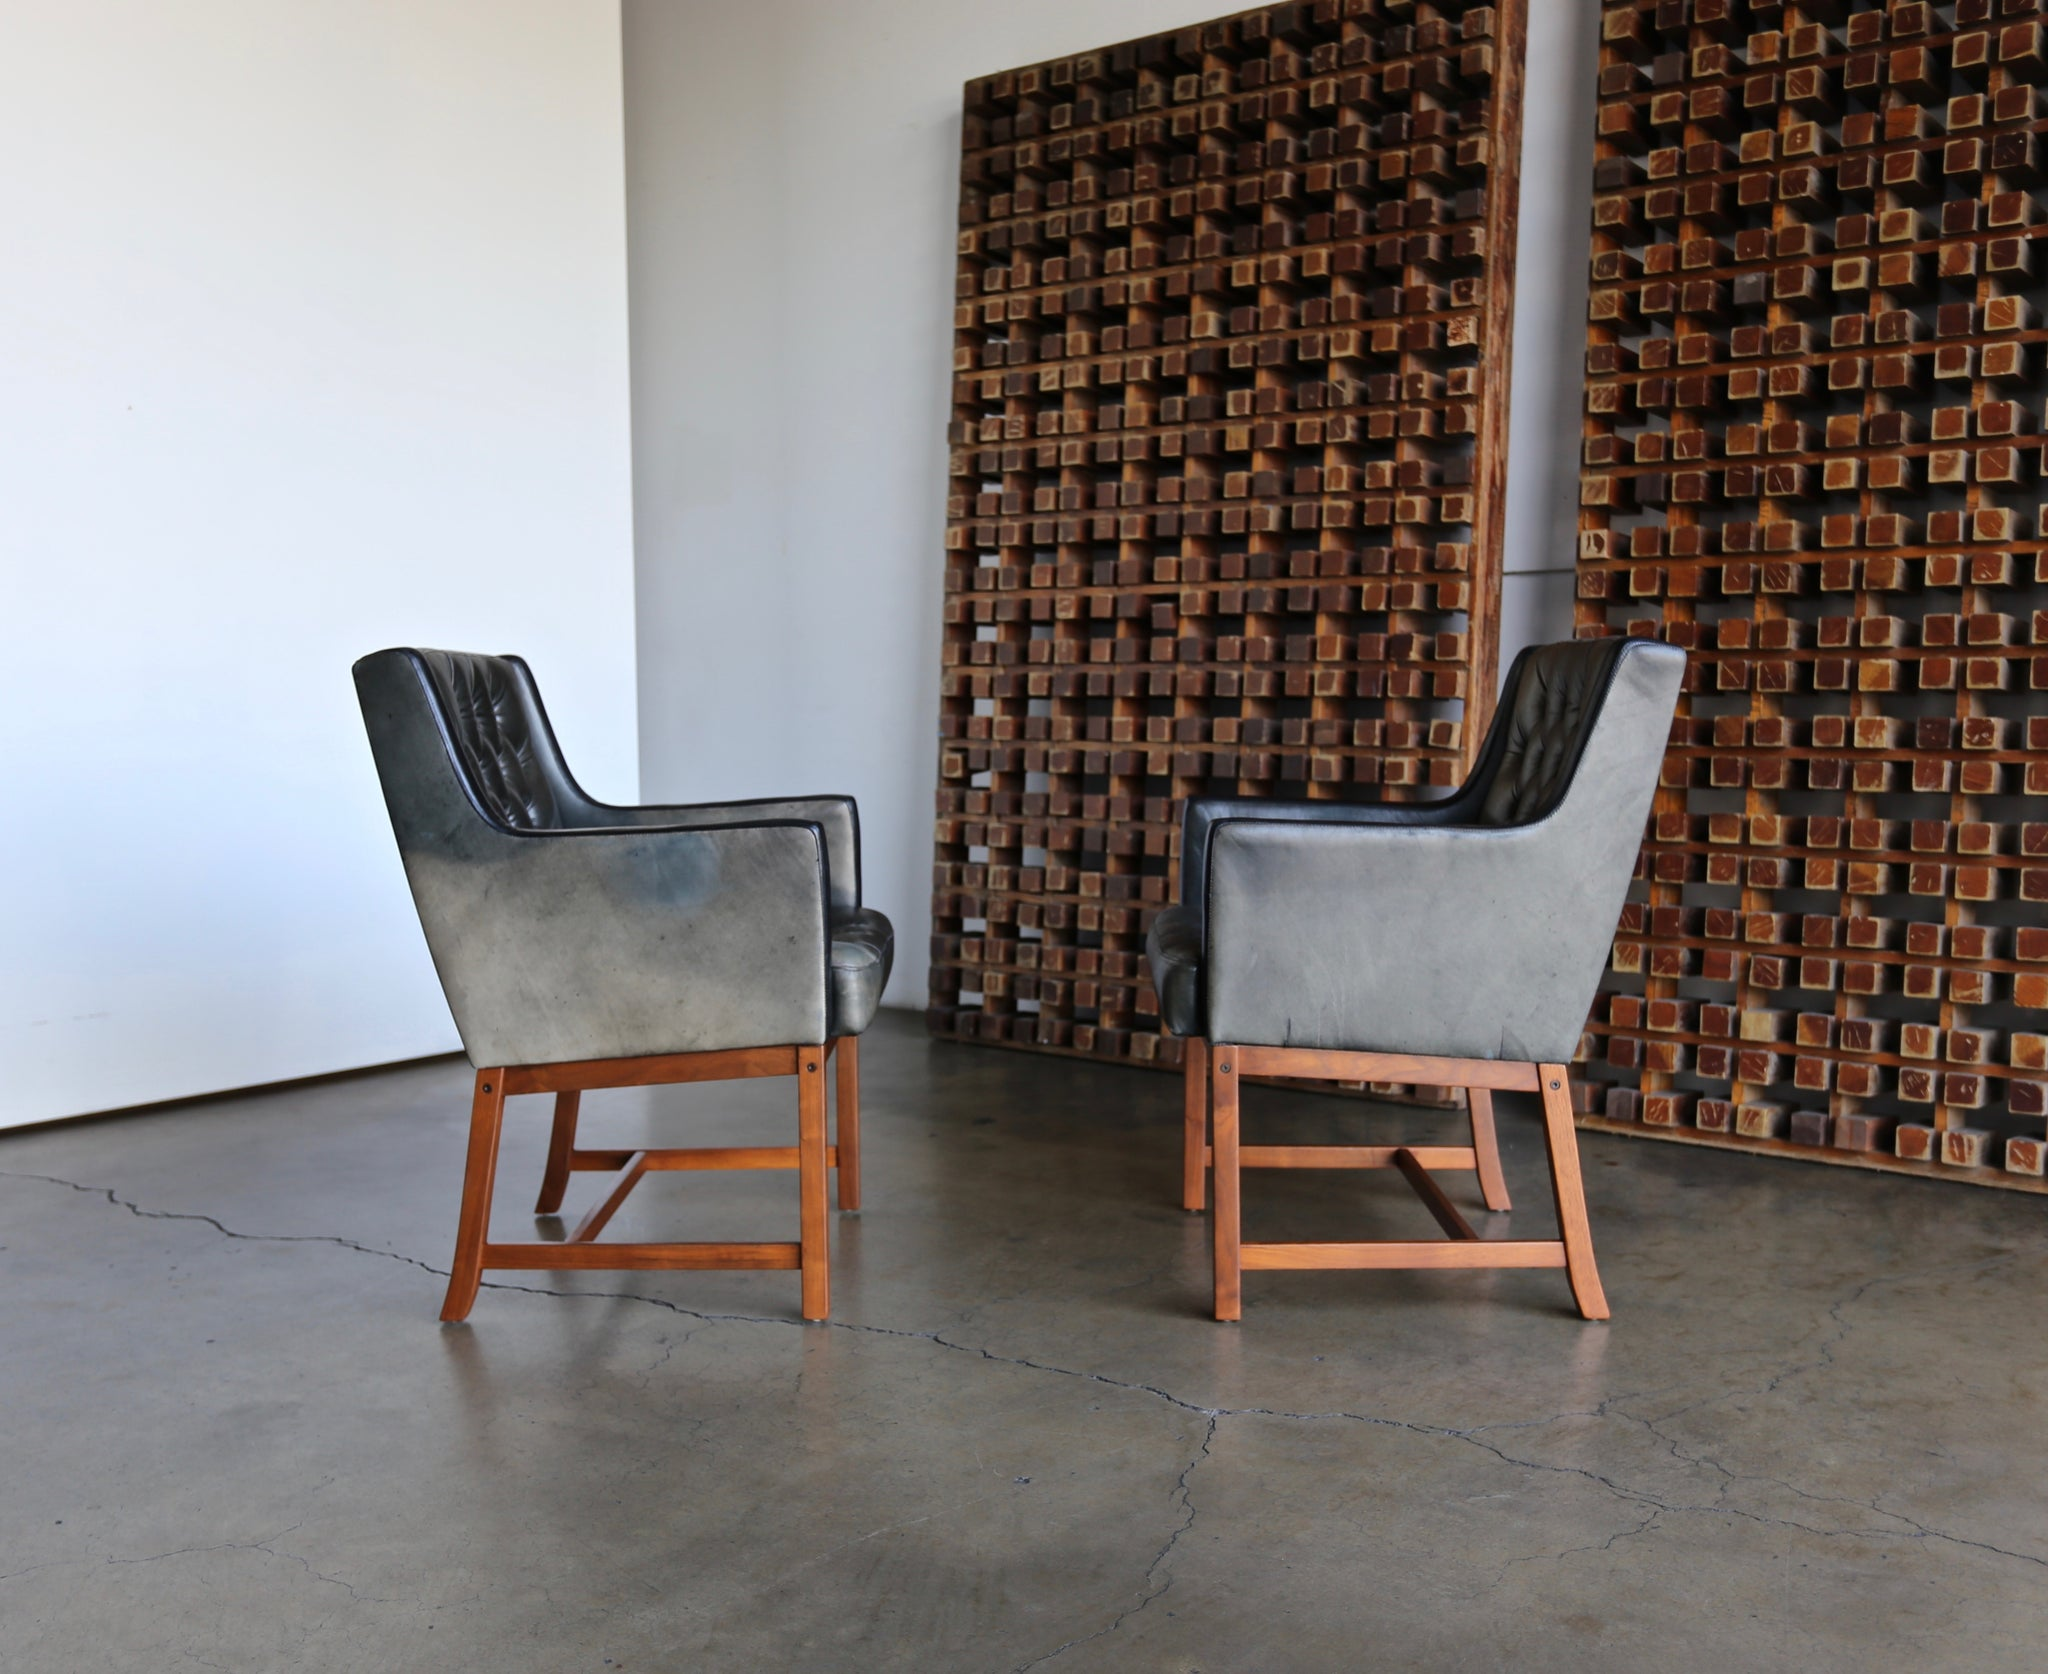 Karl Erik Ekselius Tufted Leather Chairs for JOC, circa 1960